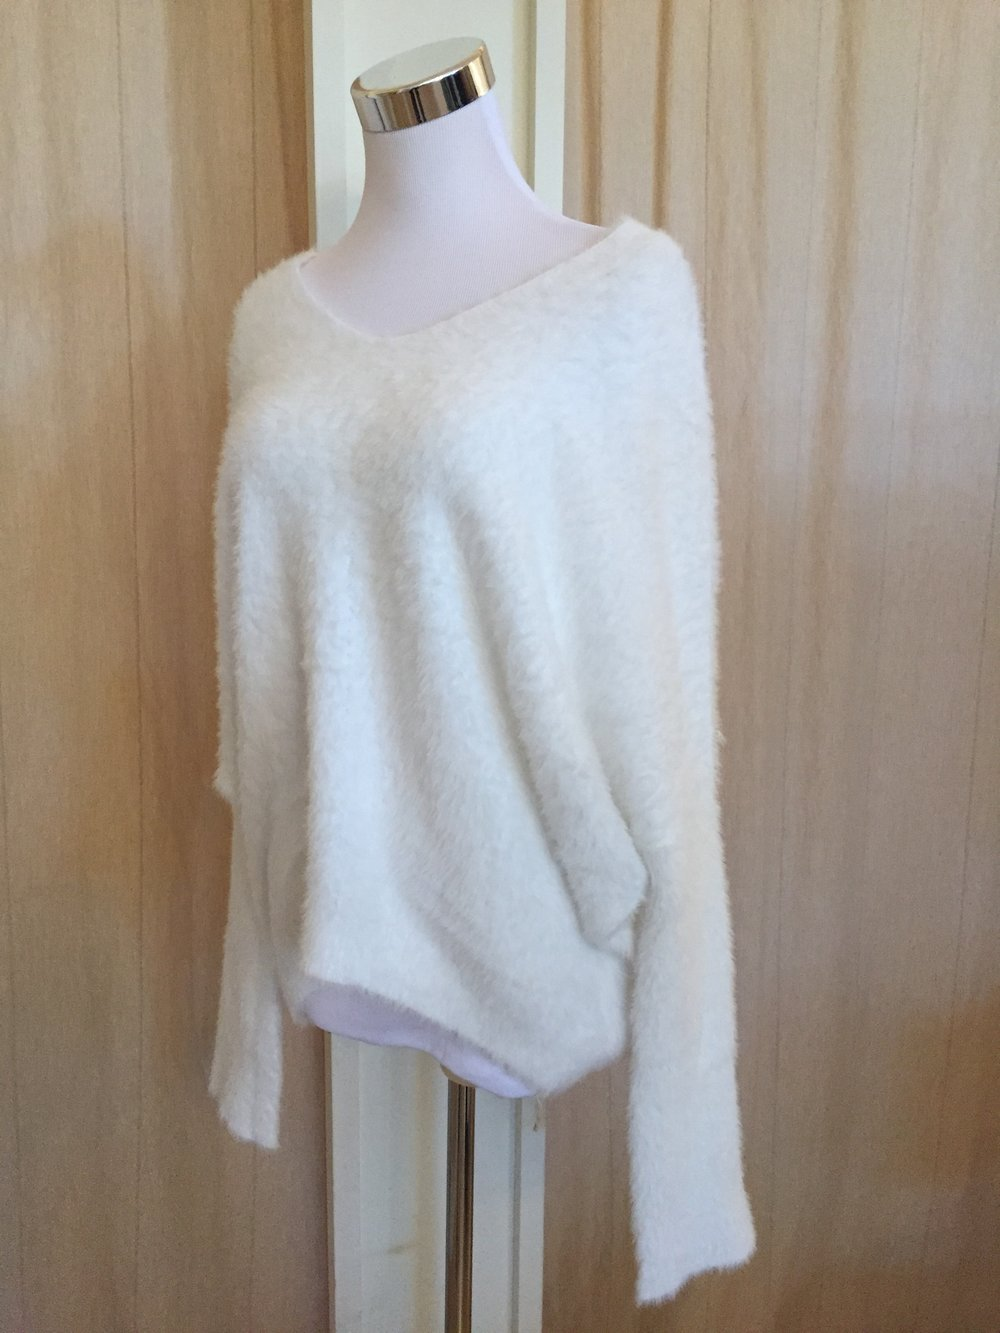 Super soft sweater $42